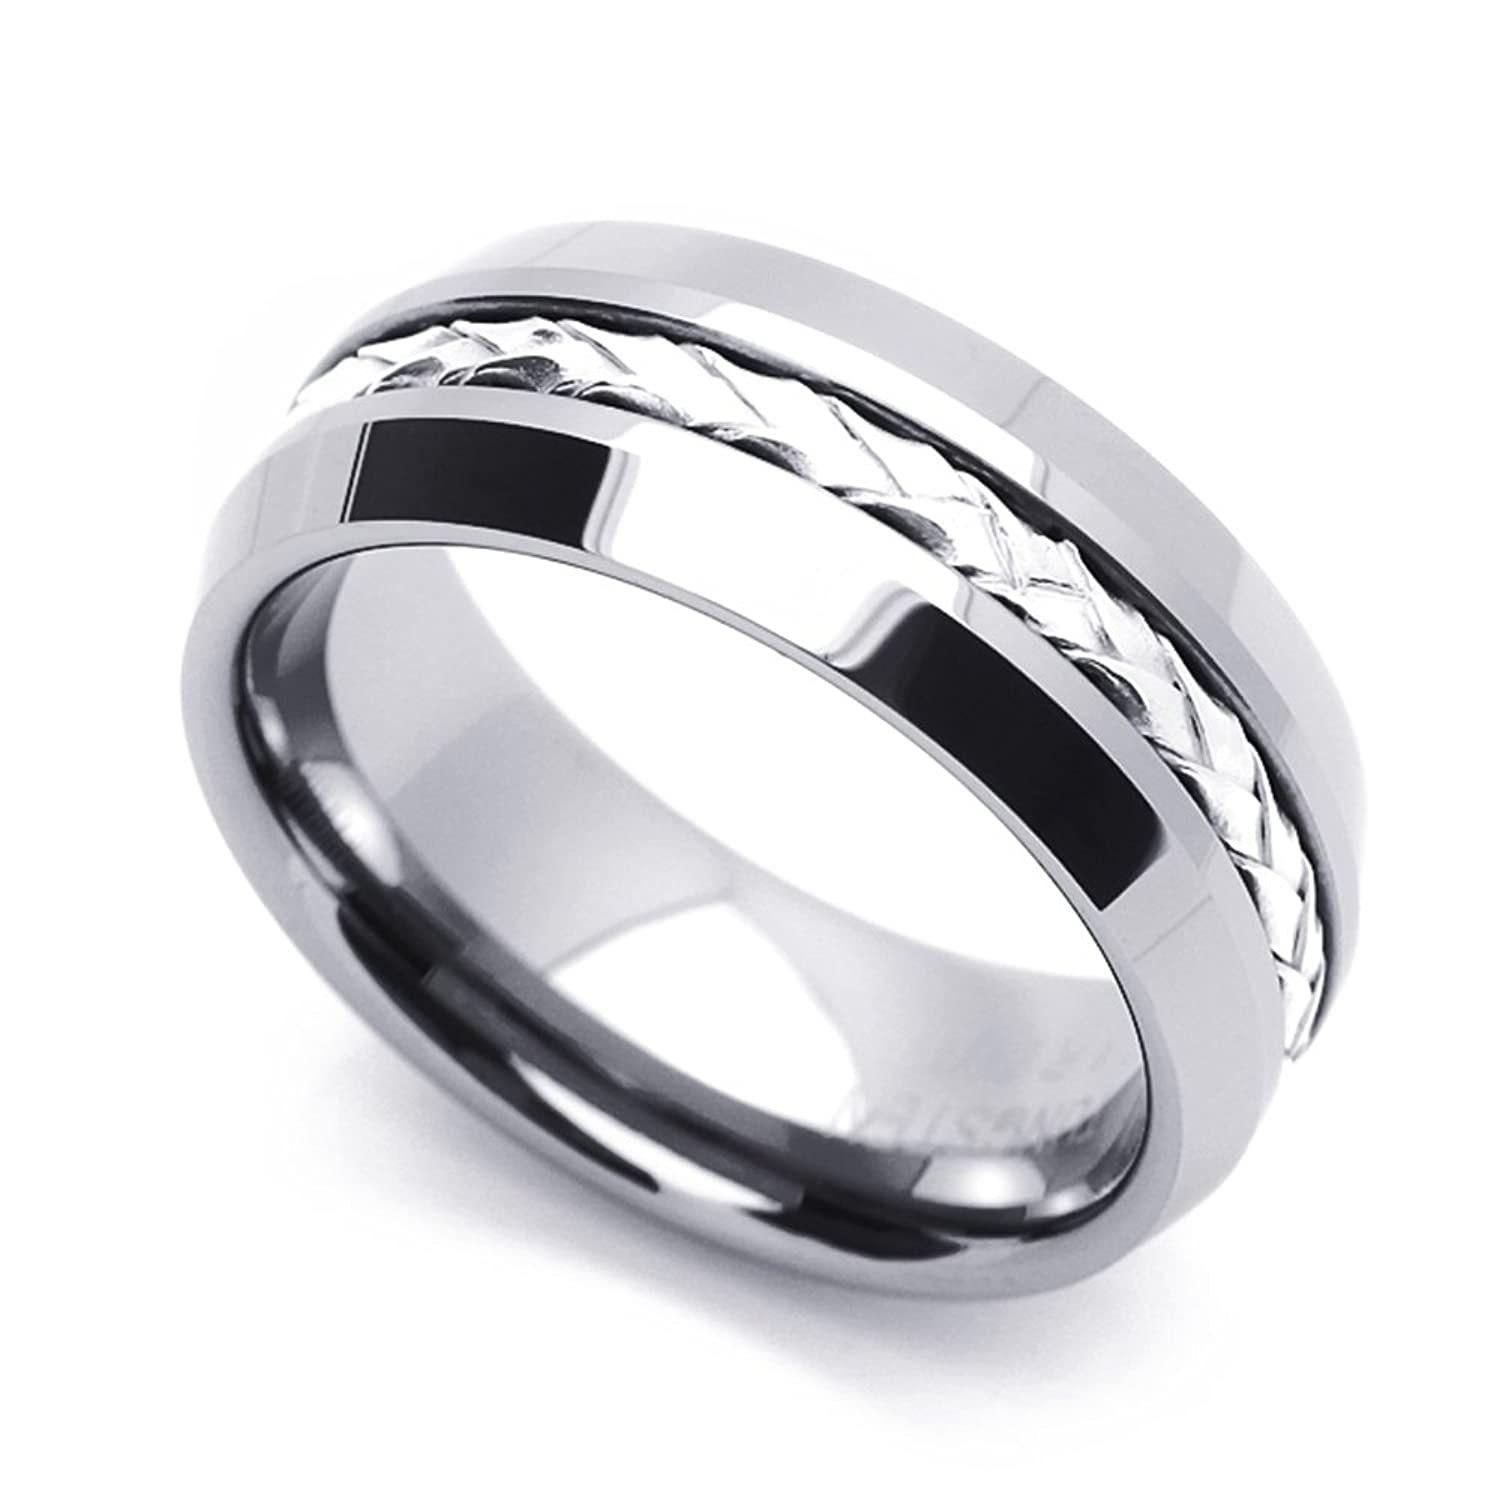 Custom Engraving 8MM Comfort Fit Tungsten Wedding Band Braided Silver Strand Inlaid Promise Ring